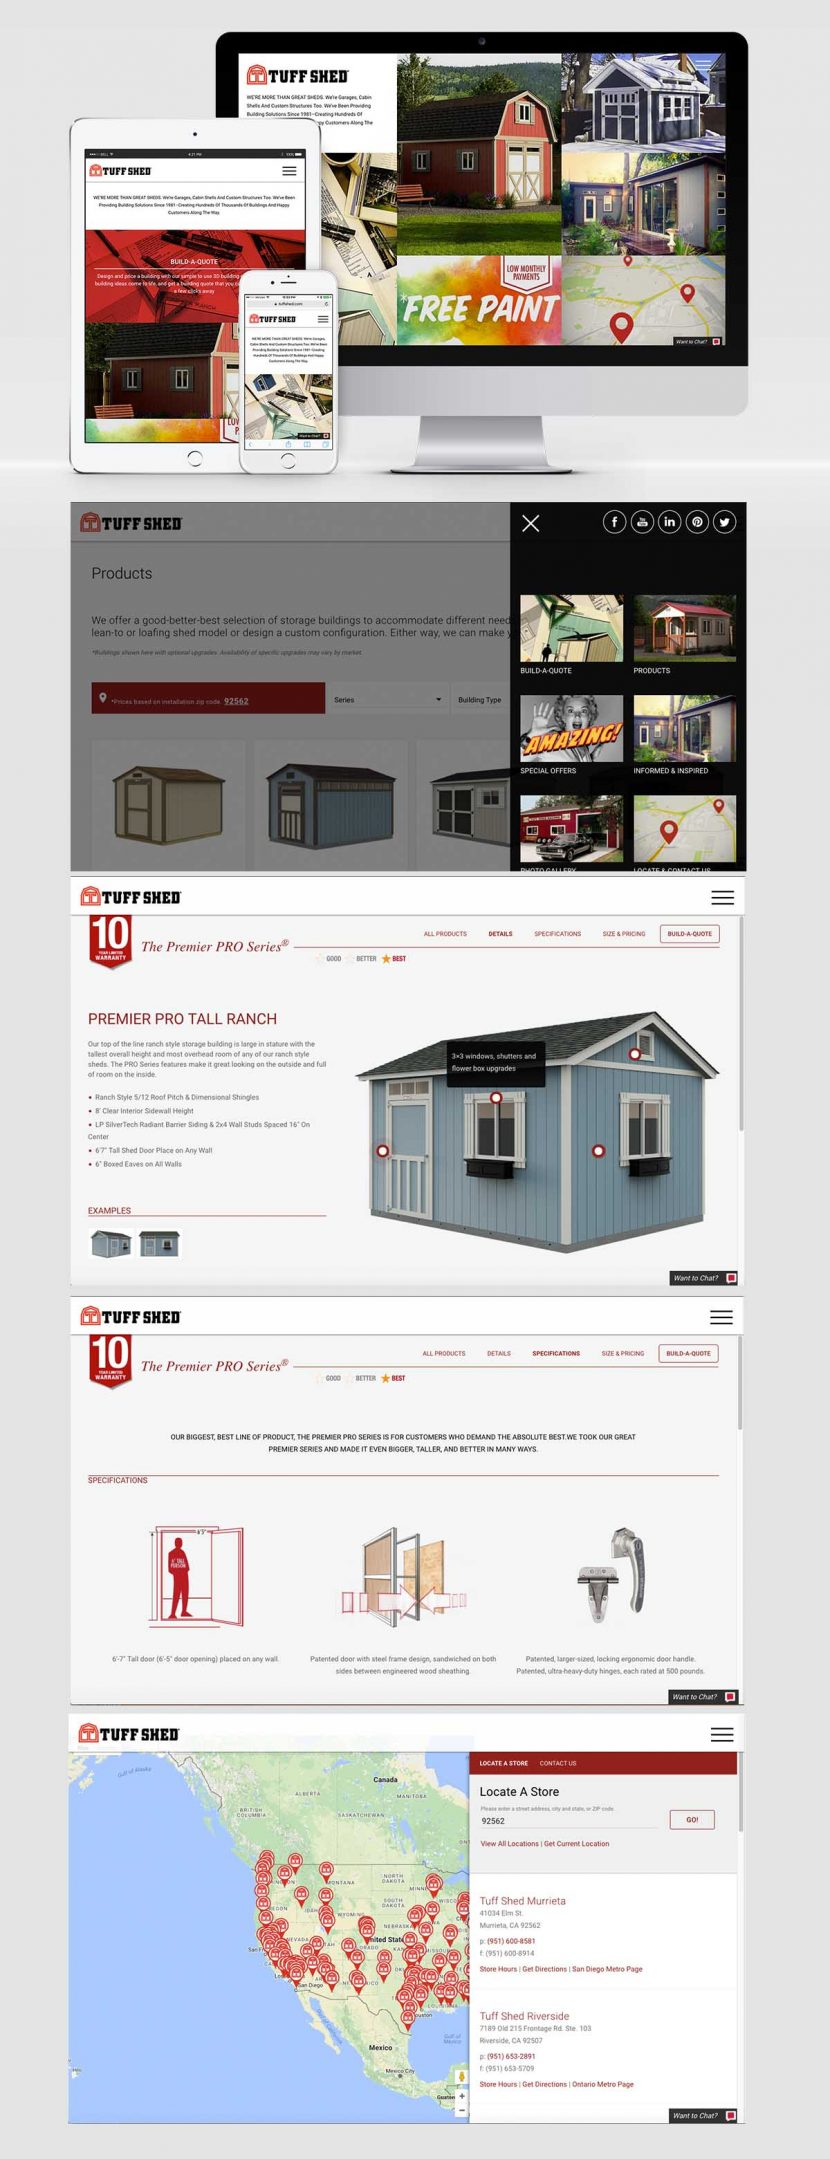 TuffShed-Web-Presentation-Long.jpg